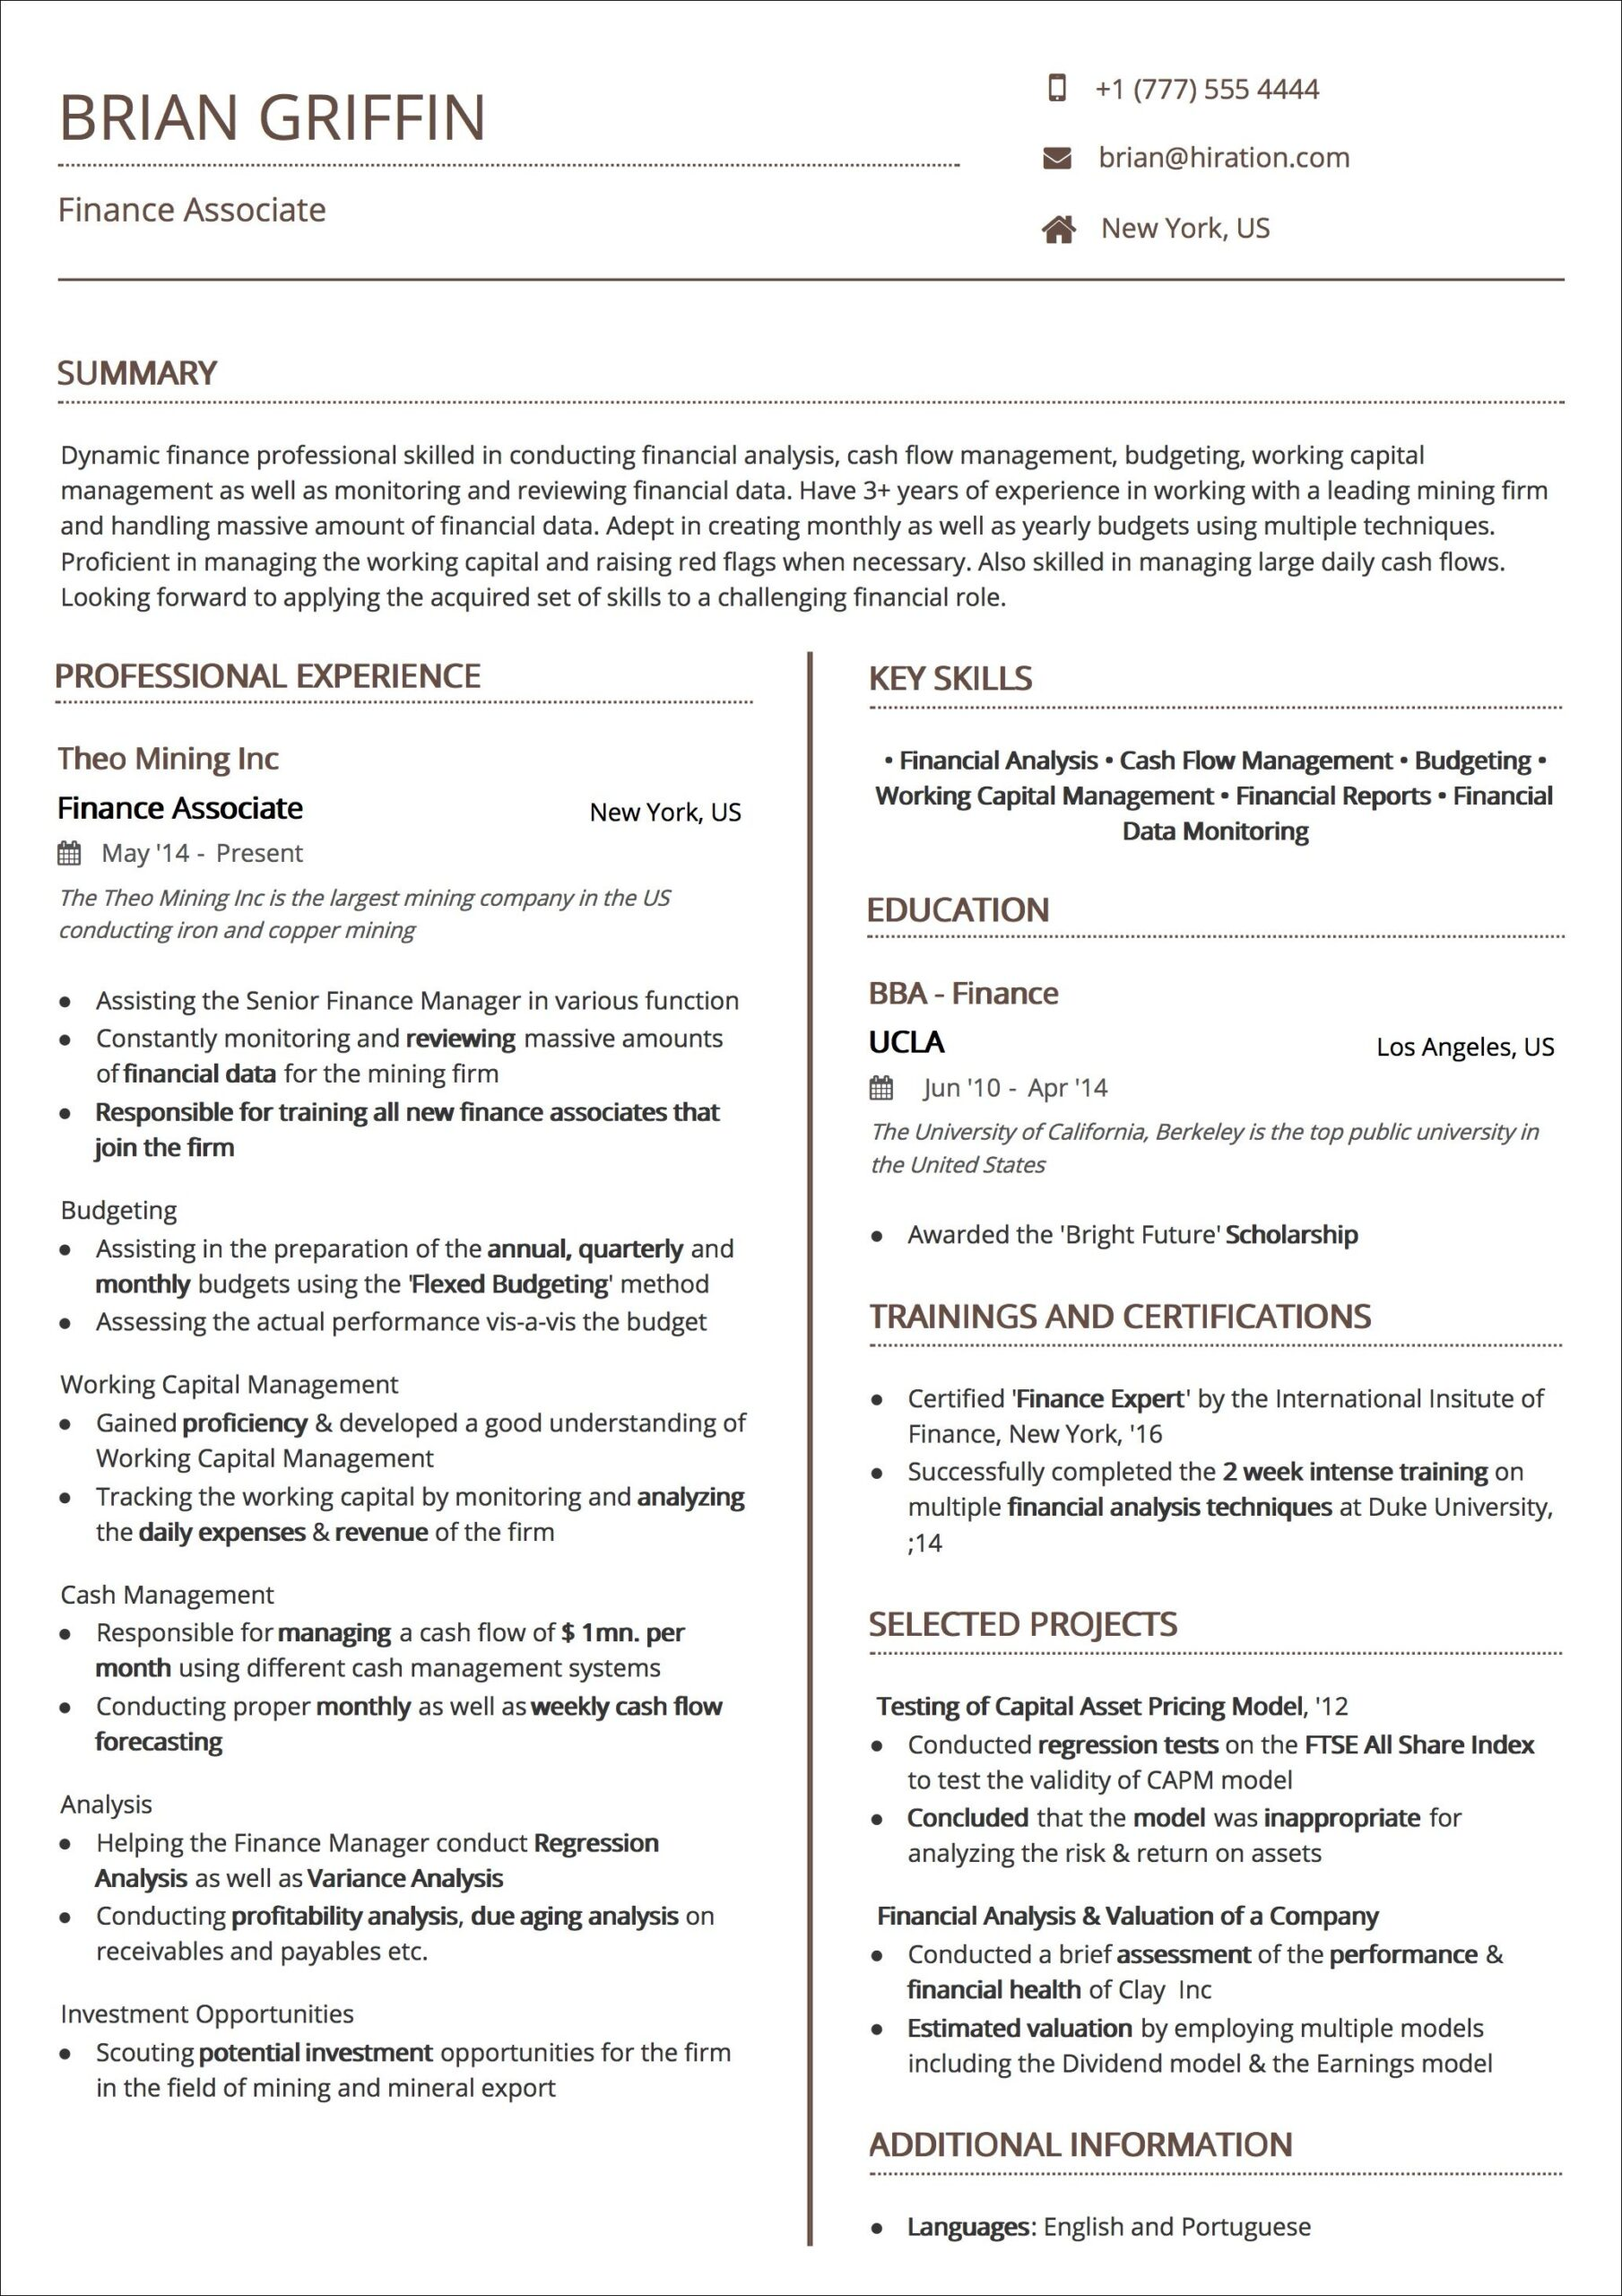 resume templates the guide to choosing best template two column uniform school experience Resume Two Column Resume Template